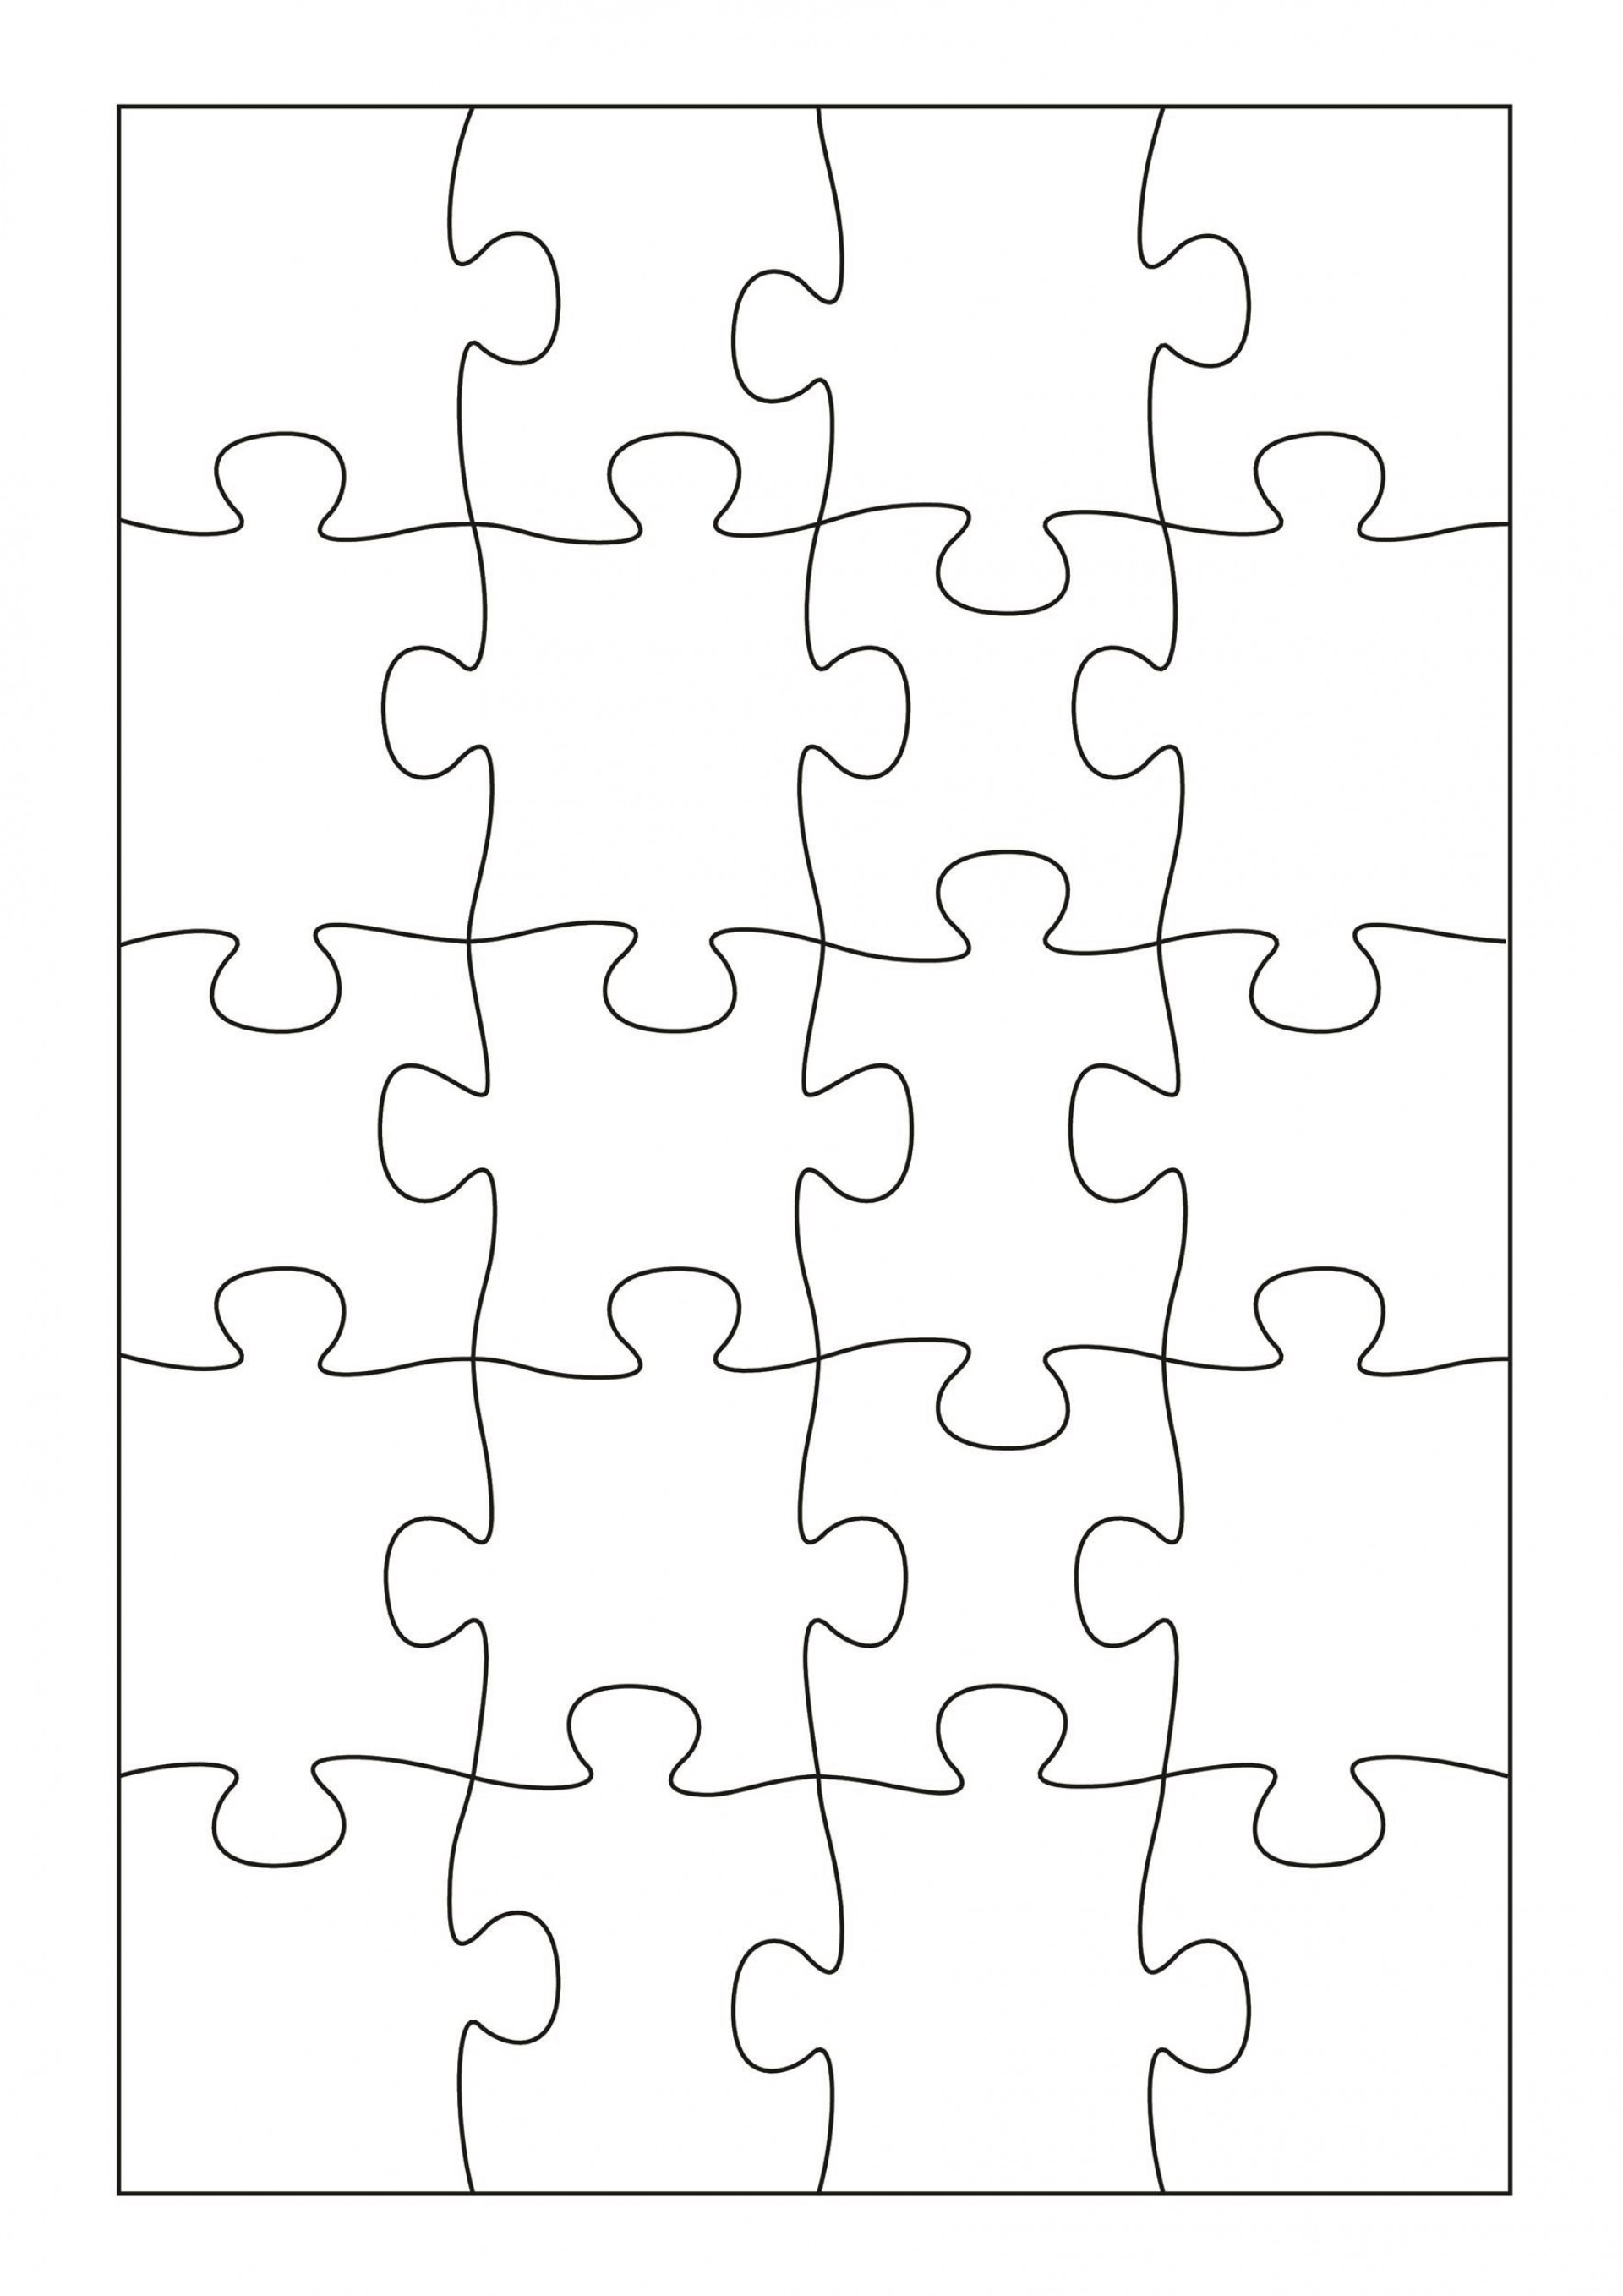 009 Phenomenal Jig Saw Puzzle Template Highest Quality  Printable Blank Jigsaw Vector Free Png1920